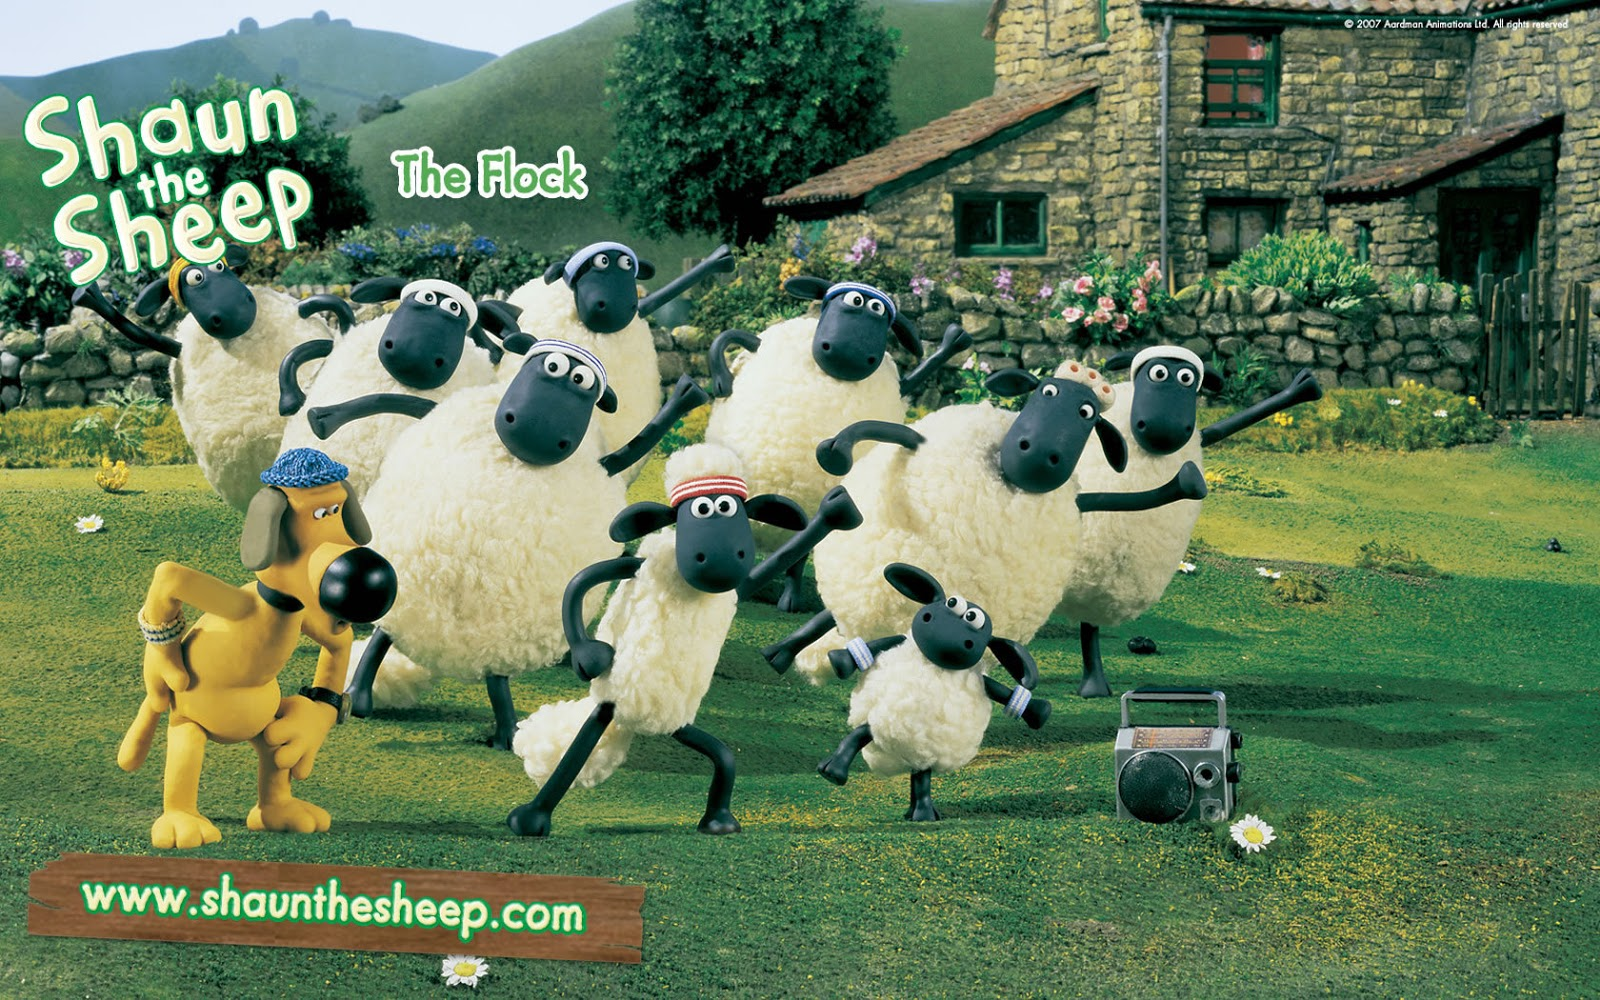 http://1.bp.blogspot.com/-IXkY2sISinQ/TetVHdOea7I/AAAAAAAAC-o/ceZ_km7CQcc/s1600/Shaun-the-sheep-wallpaper-1680-1050.jpg